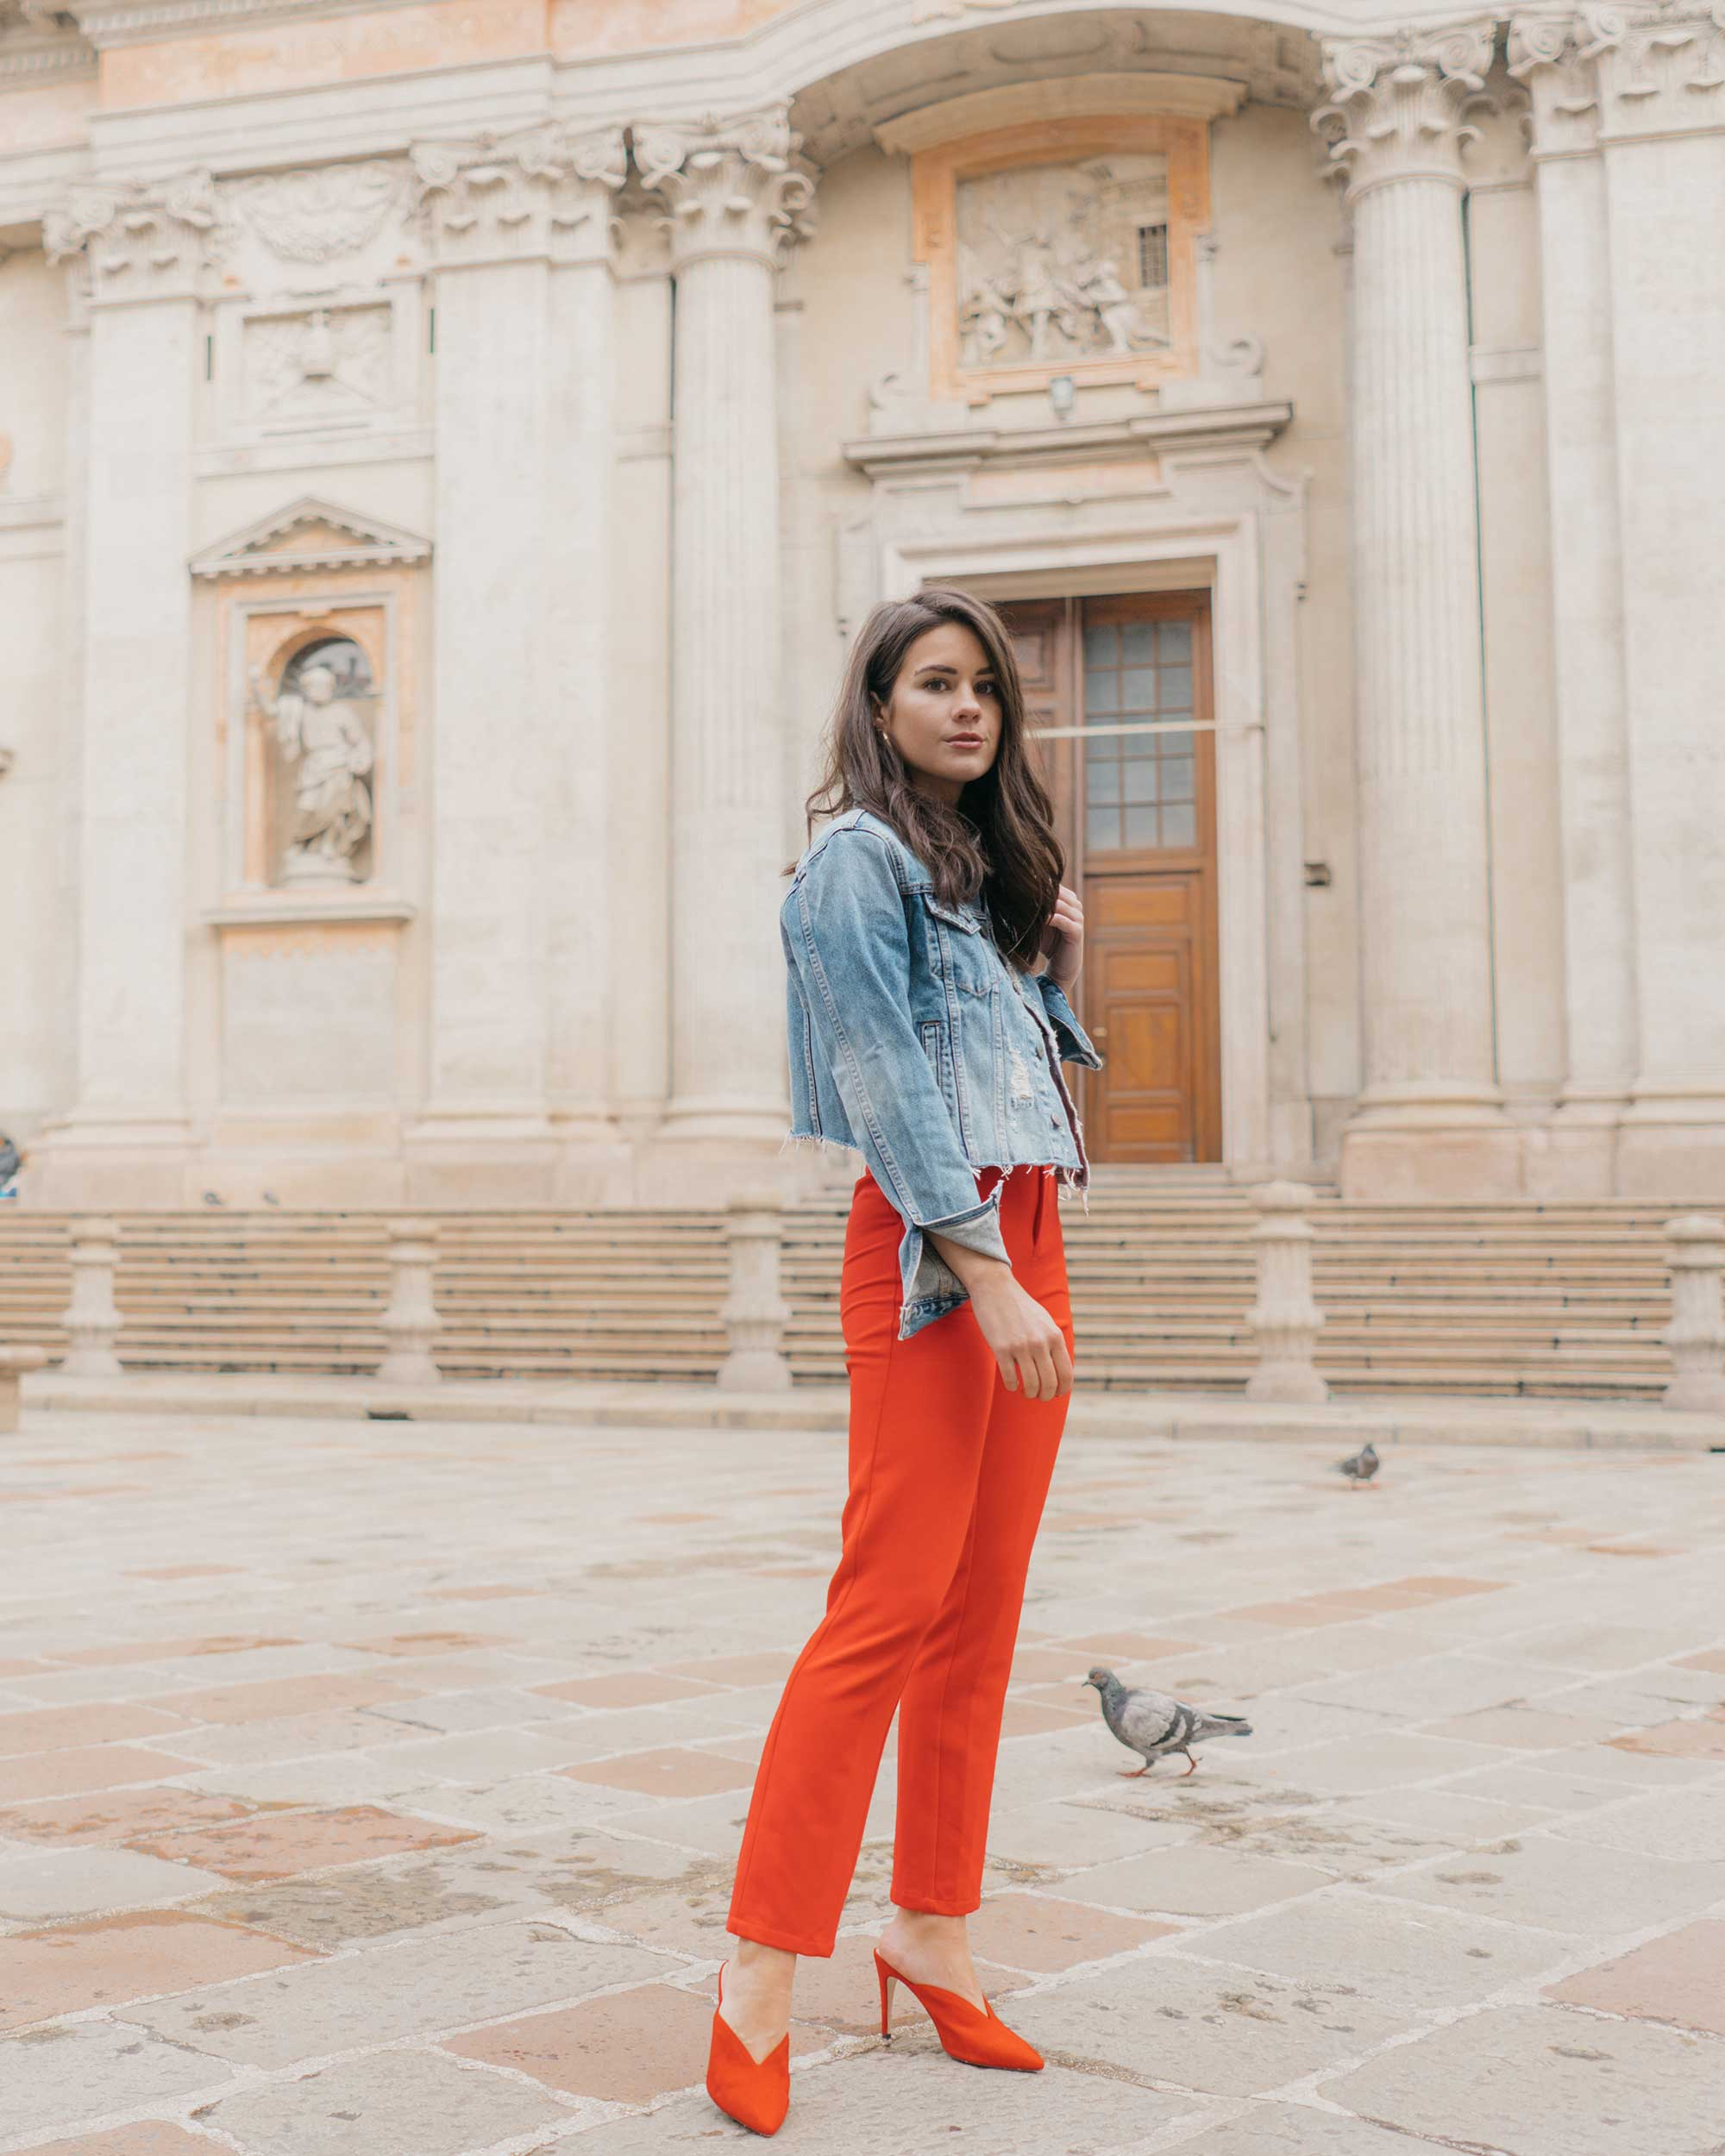 Red-Skinny-Pants,-All-You-Need-Is-Love'-Slogan-T-Shirt,-Cara-Cropped-Denim-Jacket,-Milan-Spring-Outfit5.jpg